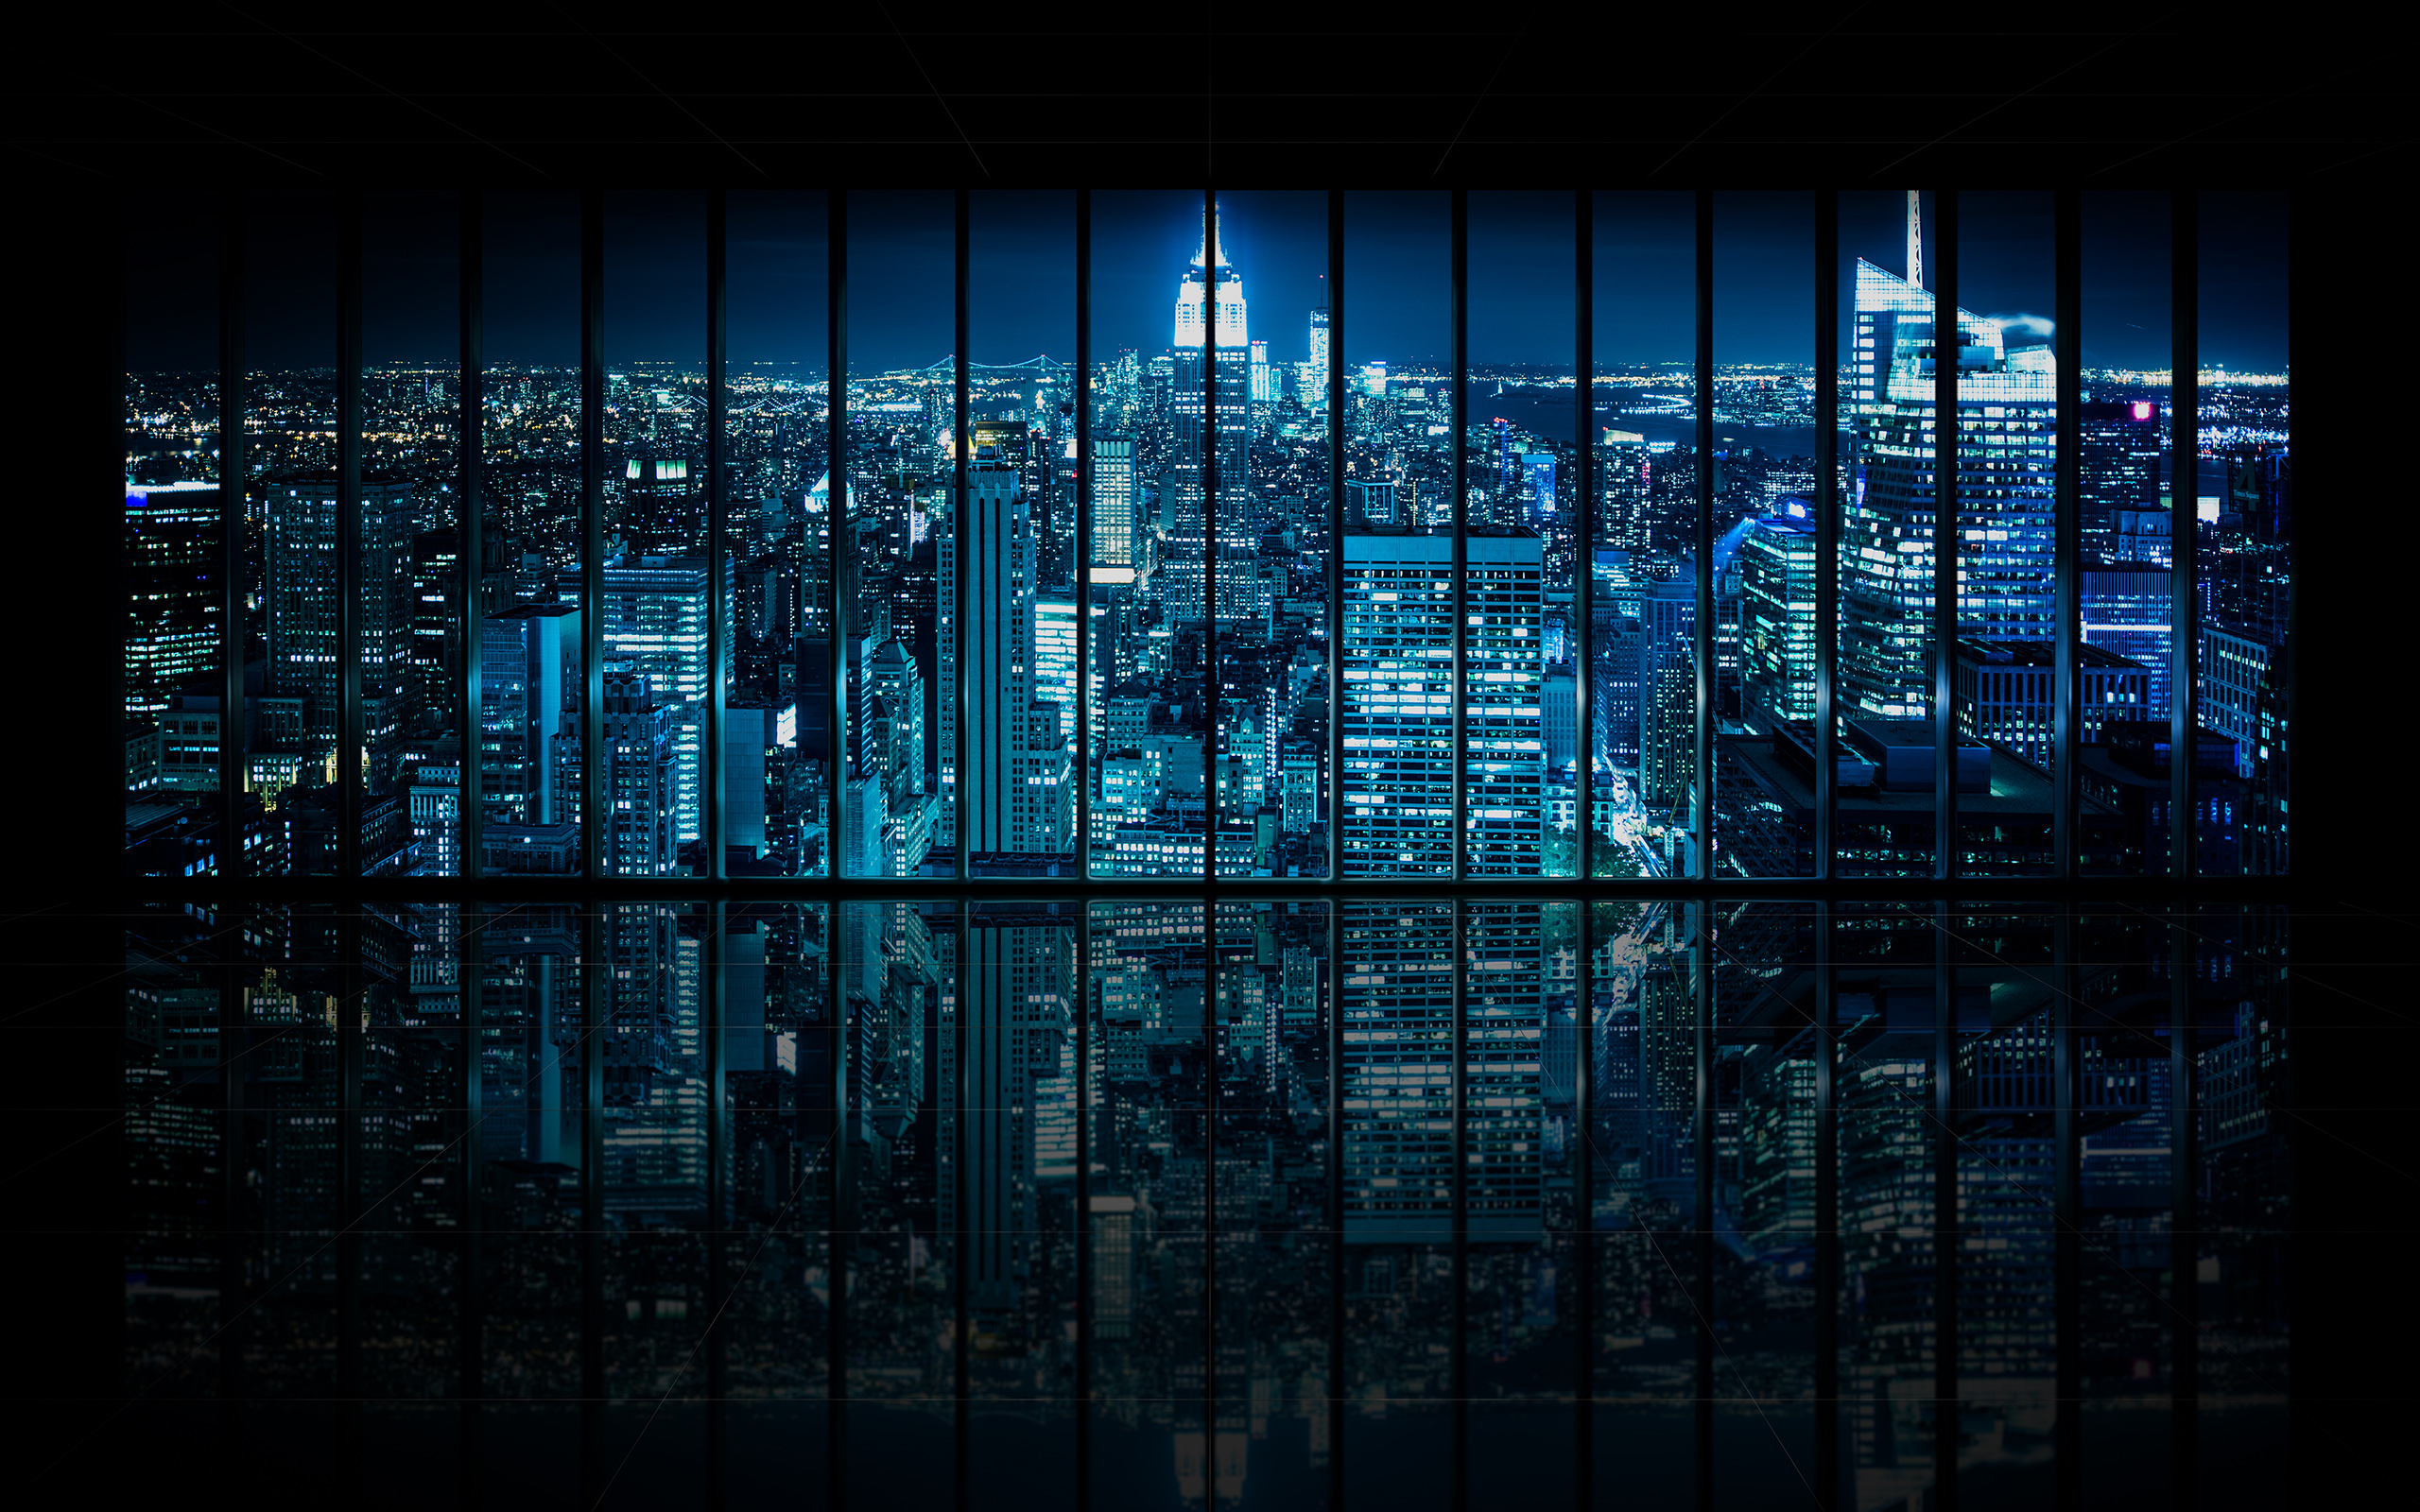 Kamp Photography Window to Gotham City Empty Dominic Kamp 2560x1600